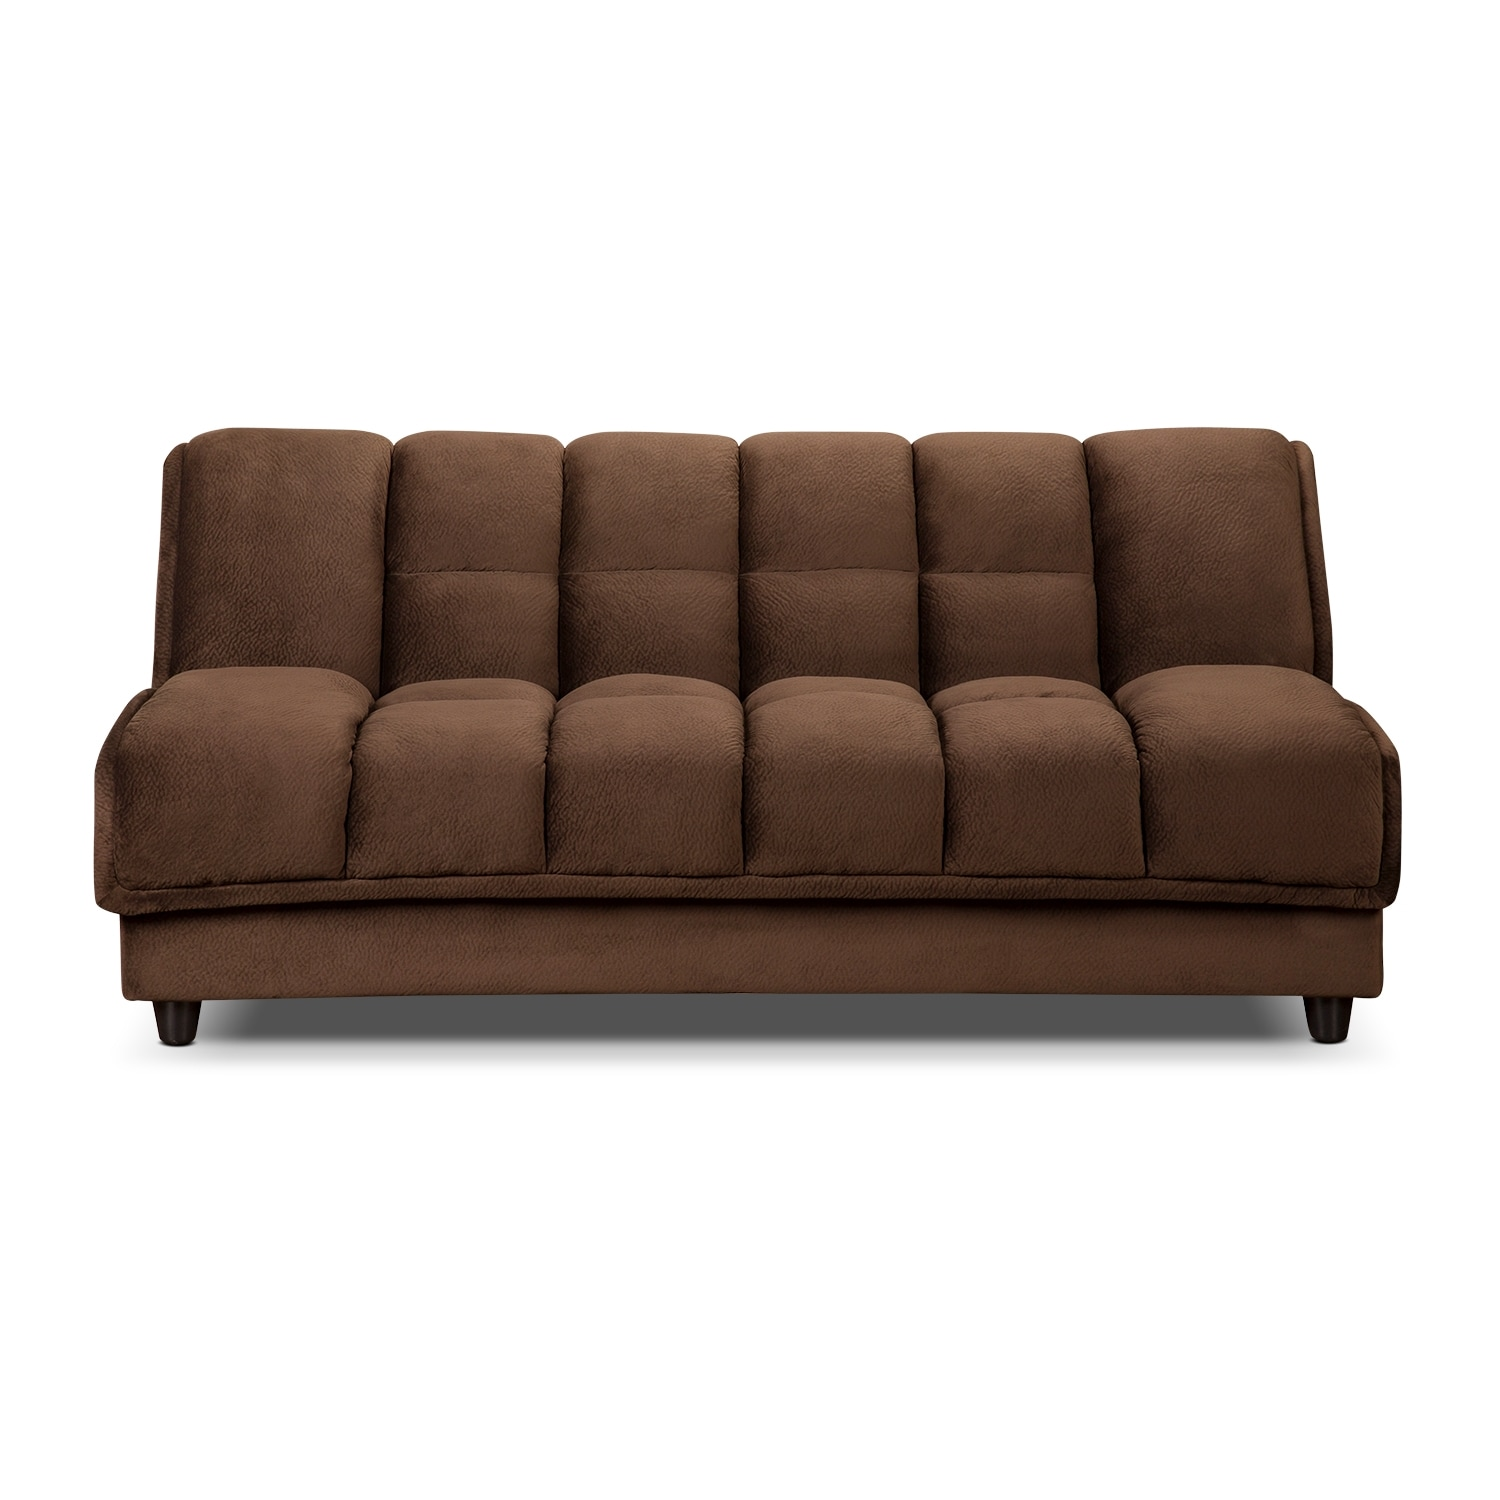 Bennett futon sofa bed value city furniture Couches bed